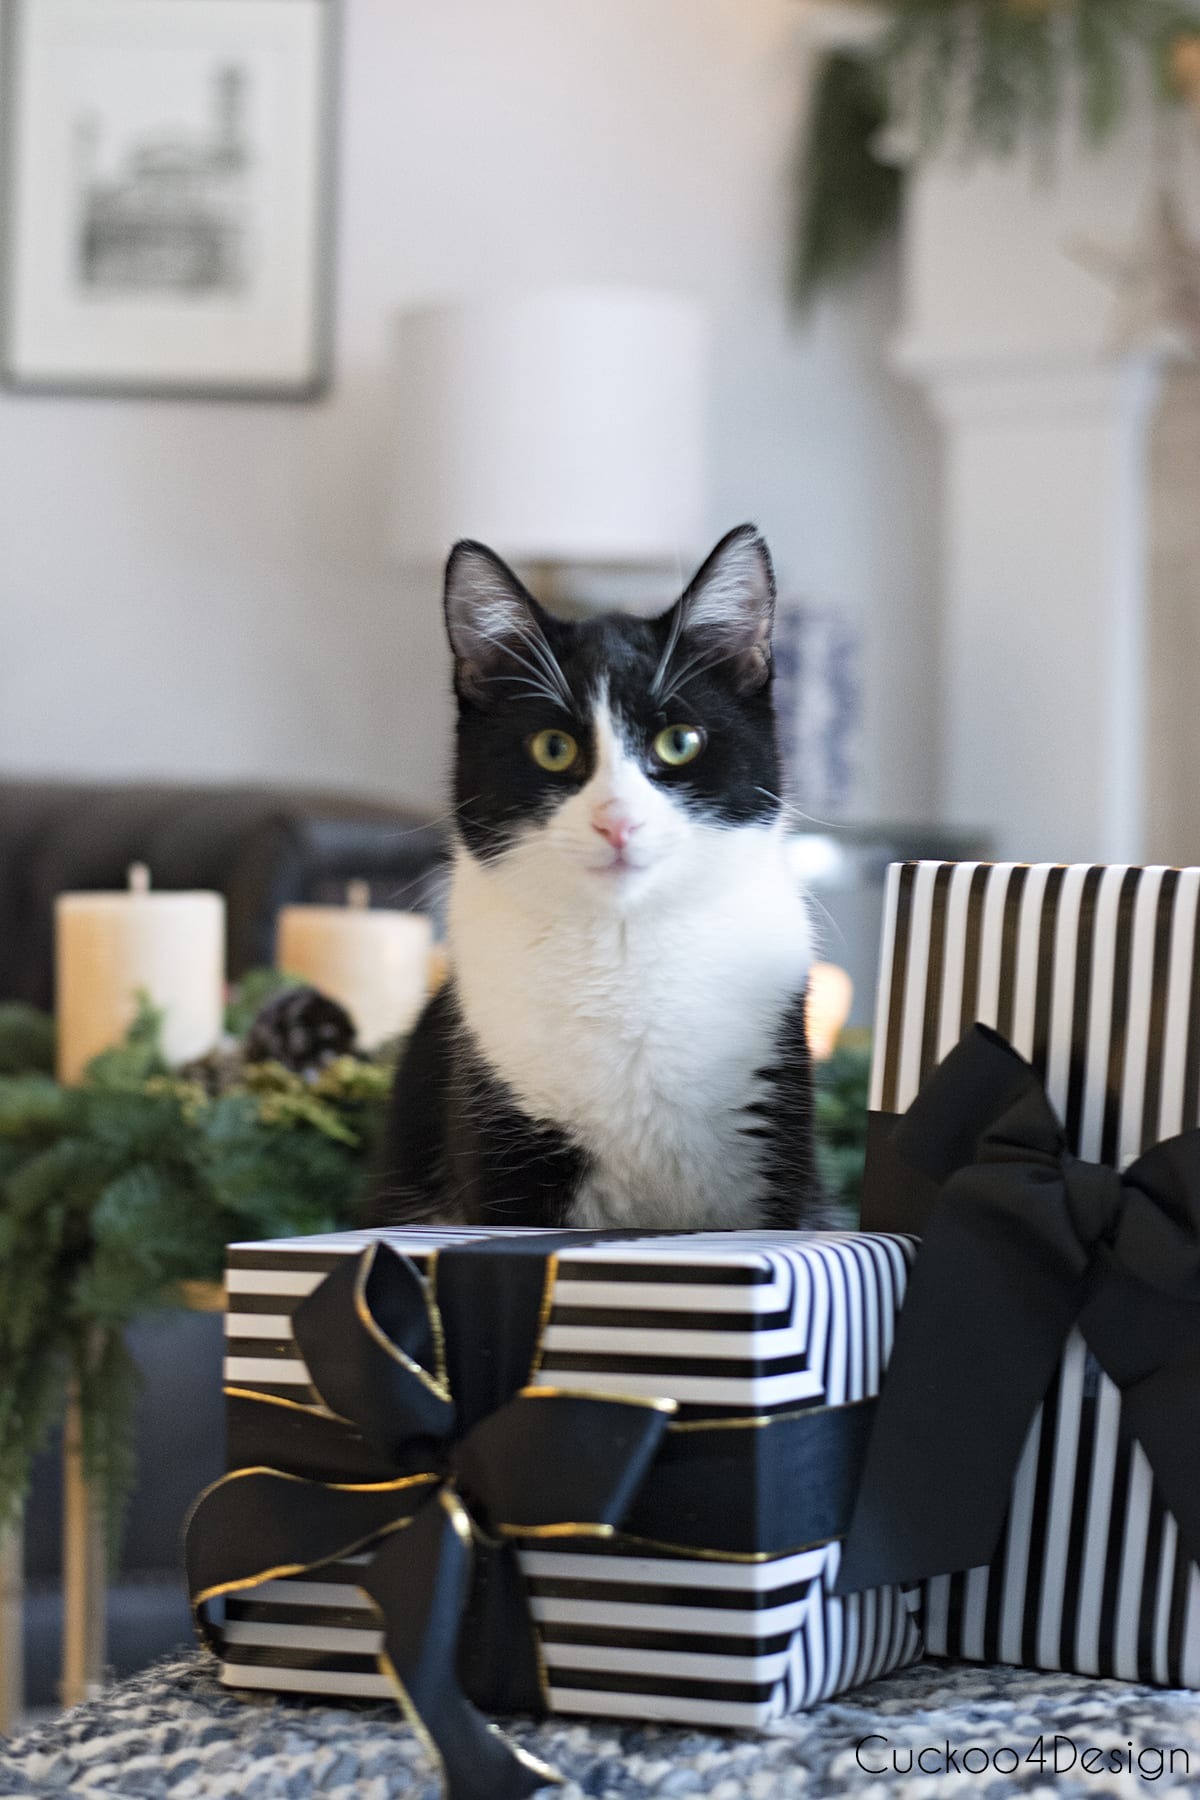 black and white tuxedo cat posing with black and white presents